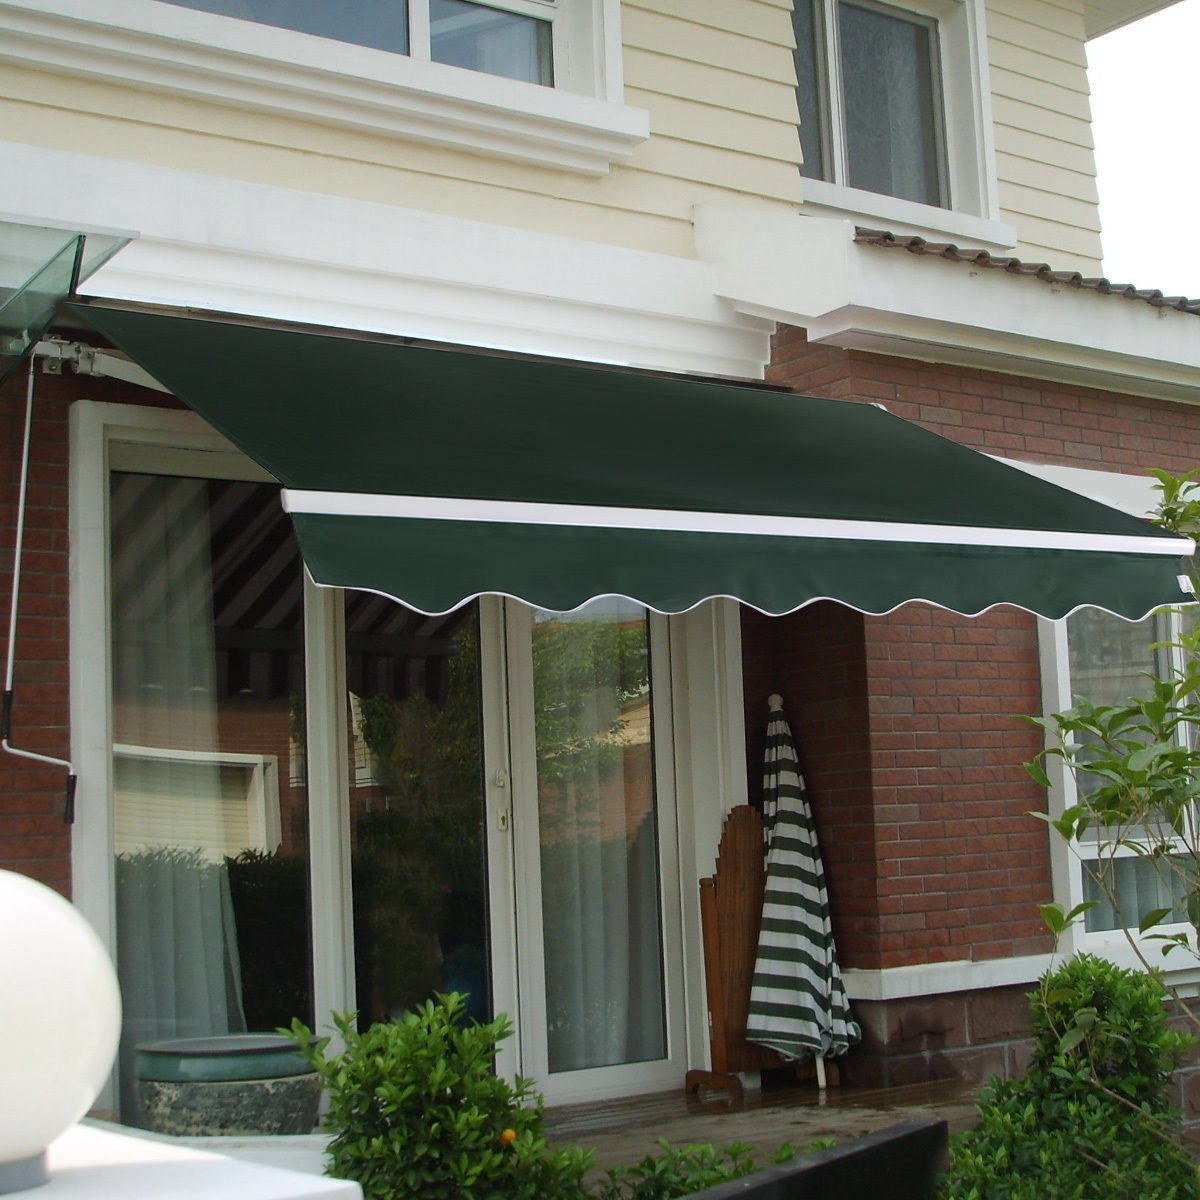 Amazon.com : Manual Patio 8.2'×6.5' Retractable Deck Awning Sunshade  Shelter Canopy Outdoor:New free shipping by WW shop (green) : Garden &  Outdoor